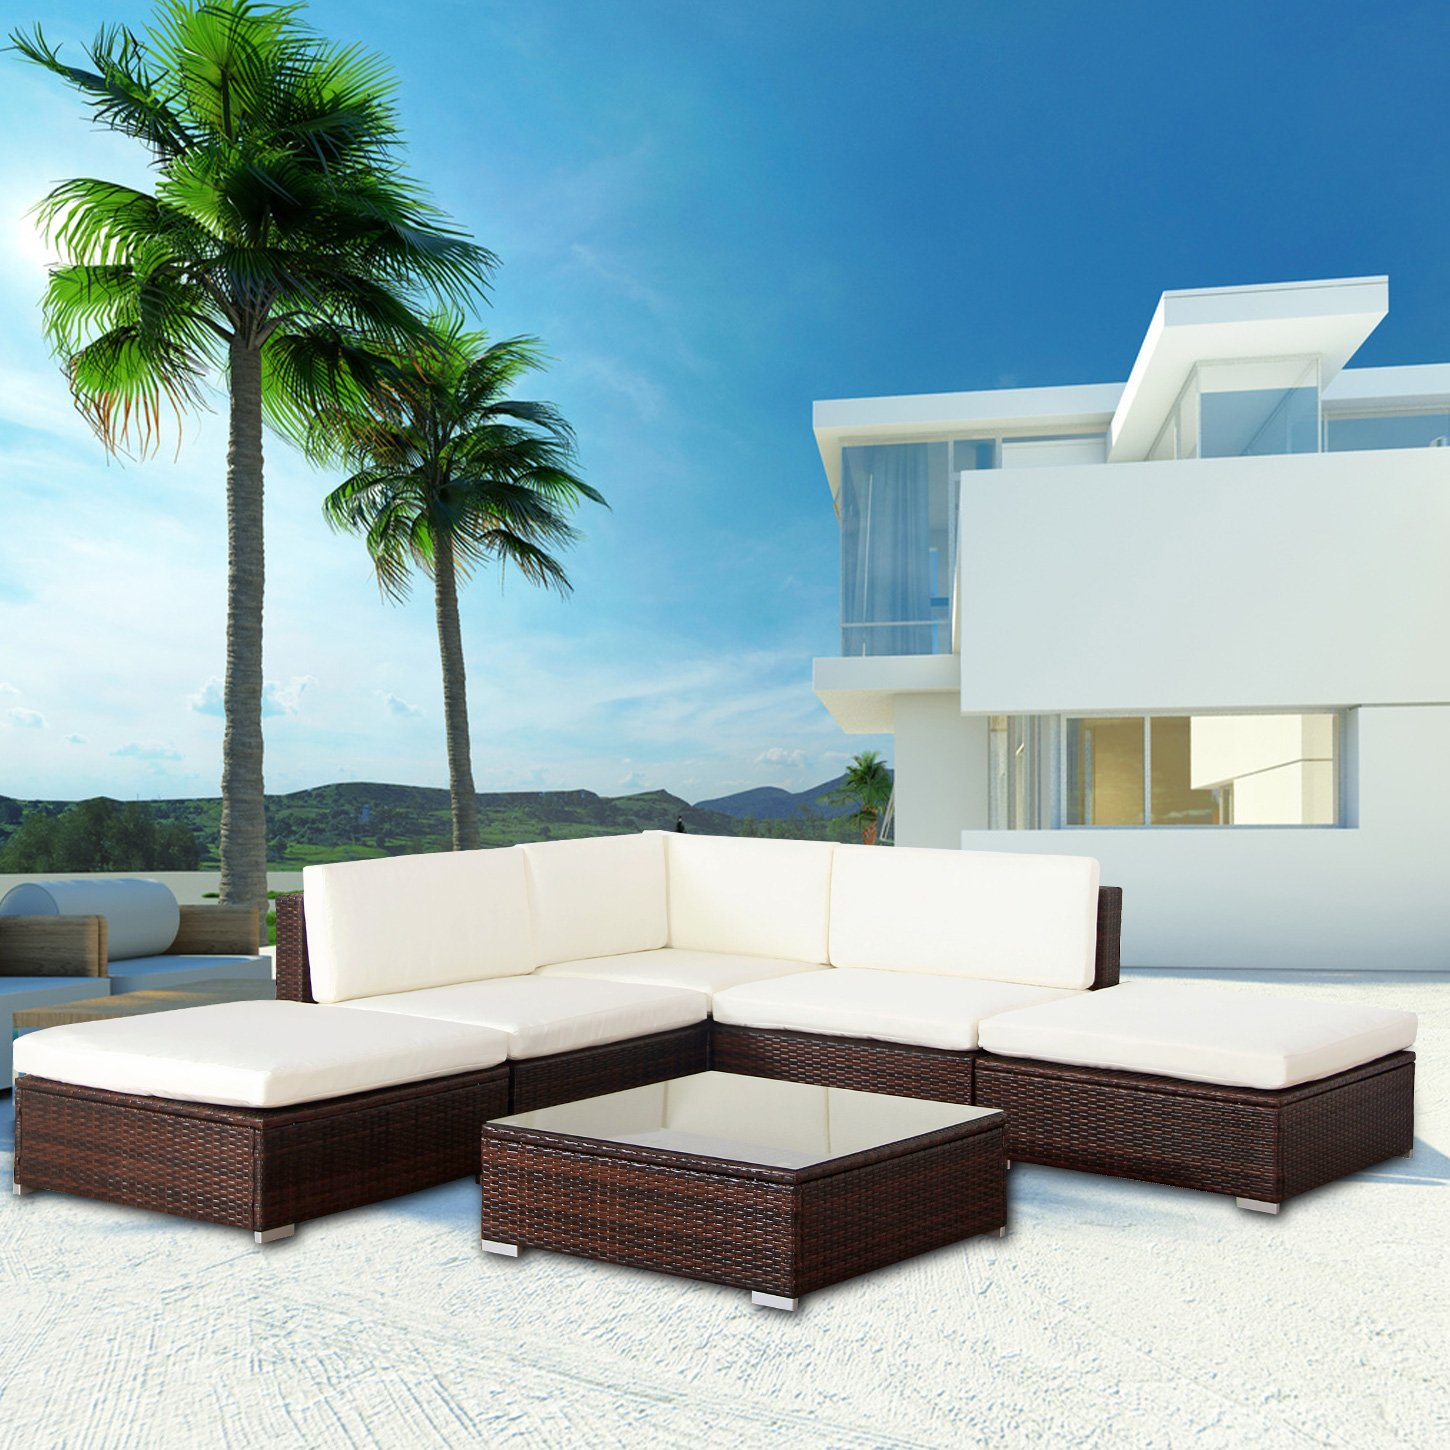 mali poly rattan lounge braun aluminium sofa garnitur polyrattan gartenm bel g nstig online kaufen. Black Bedroom Furniture Sets. Home Design Ideas